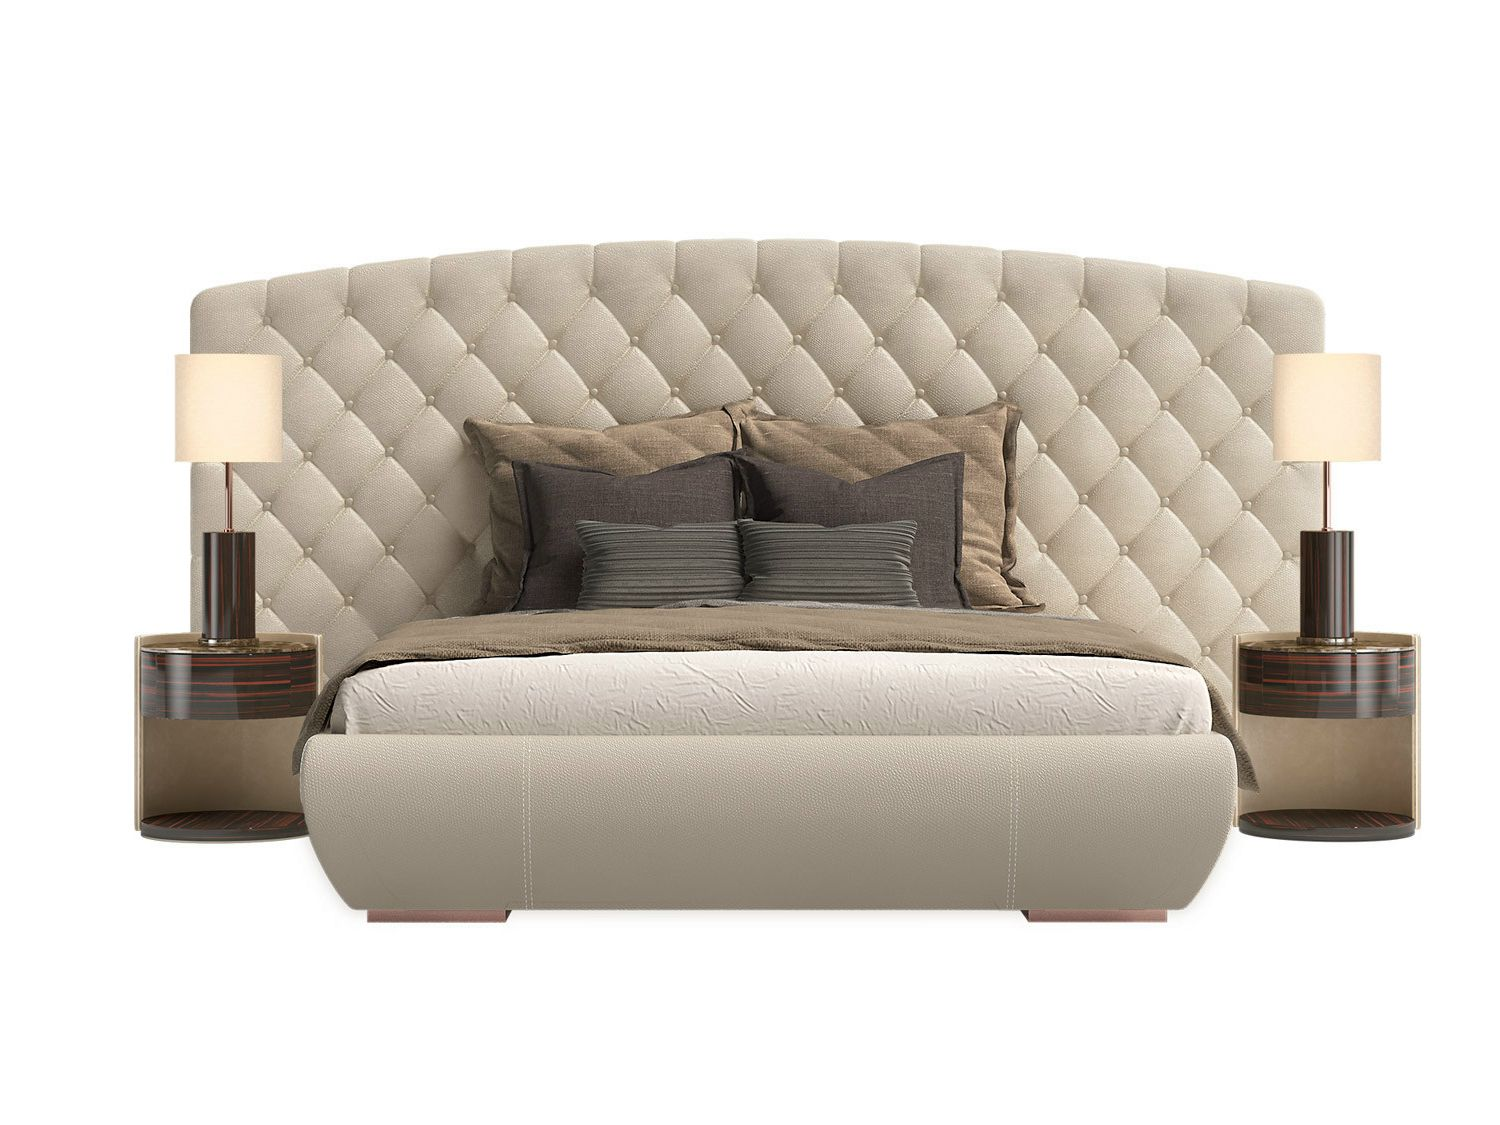 Double Bed With Upholstered Headboard KESY XL By Capital Collection